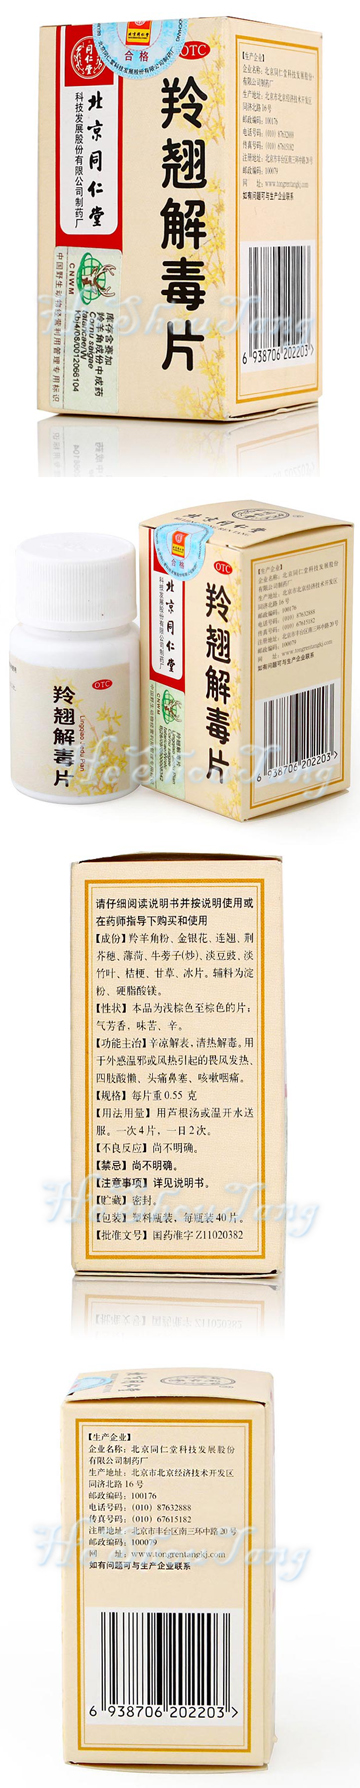 Ling Qiao Jie Du Pian-For Wind Heat and High Fever? Antelope horn powder, Honeysuckle, Forsythia, Spikes of Schizonepeta, Mint, Burdock (fried), Fermented Soybean, Henom bamboo leaf , Campanulaceae, Borneol, Licorice? Qing Wen Jie Du, Xuan Fei Xie Re.It is used for Wind Heat -Flue and high fever to relieve high fever, sore muscle, headache, snuffle and runny nose, cough, dry mouth, sore throat